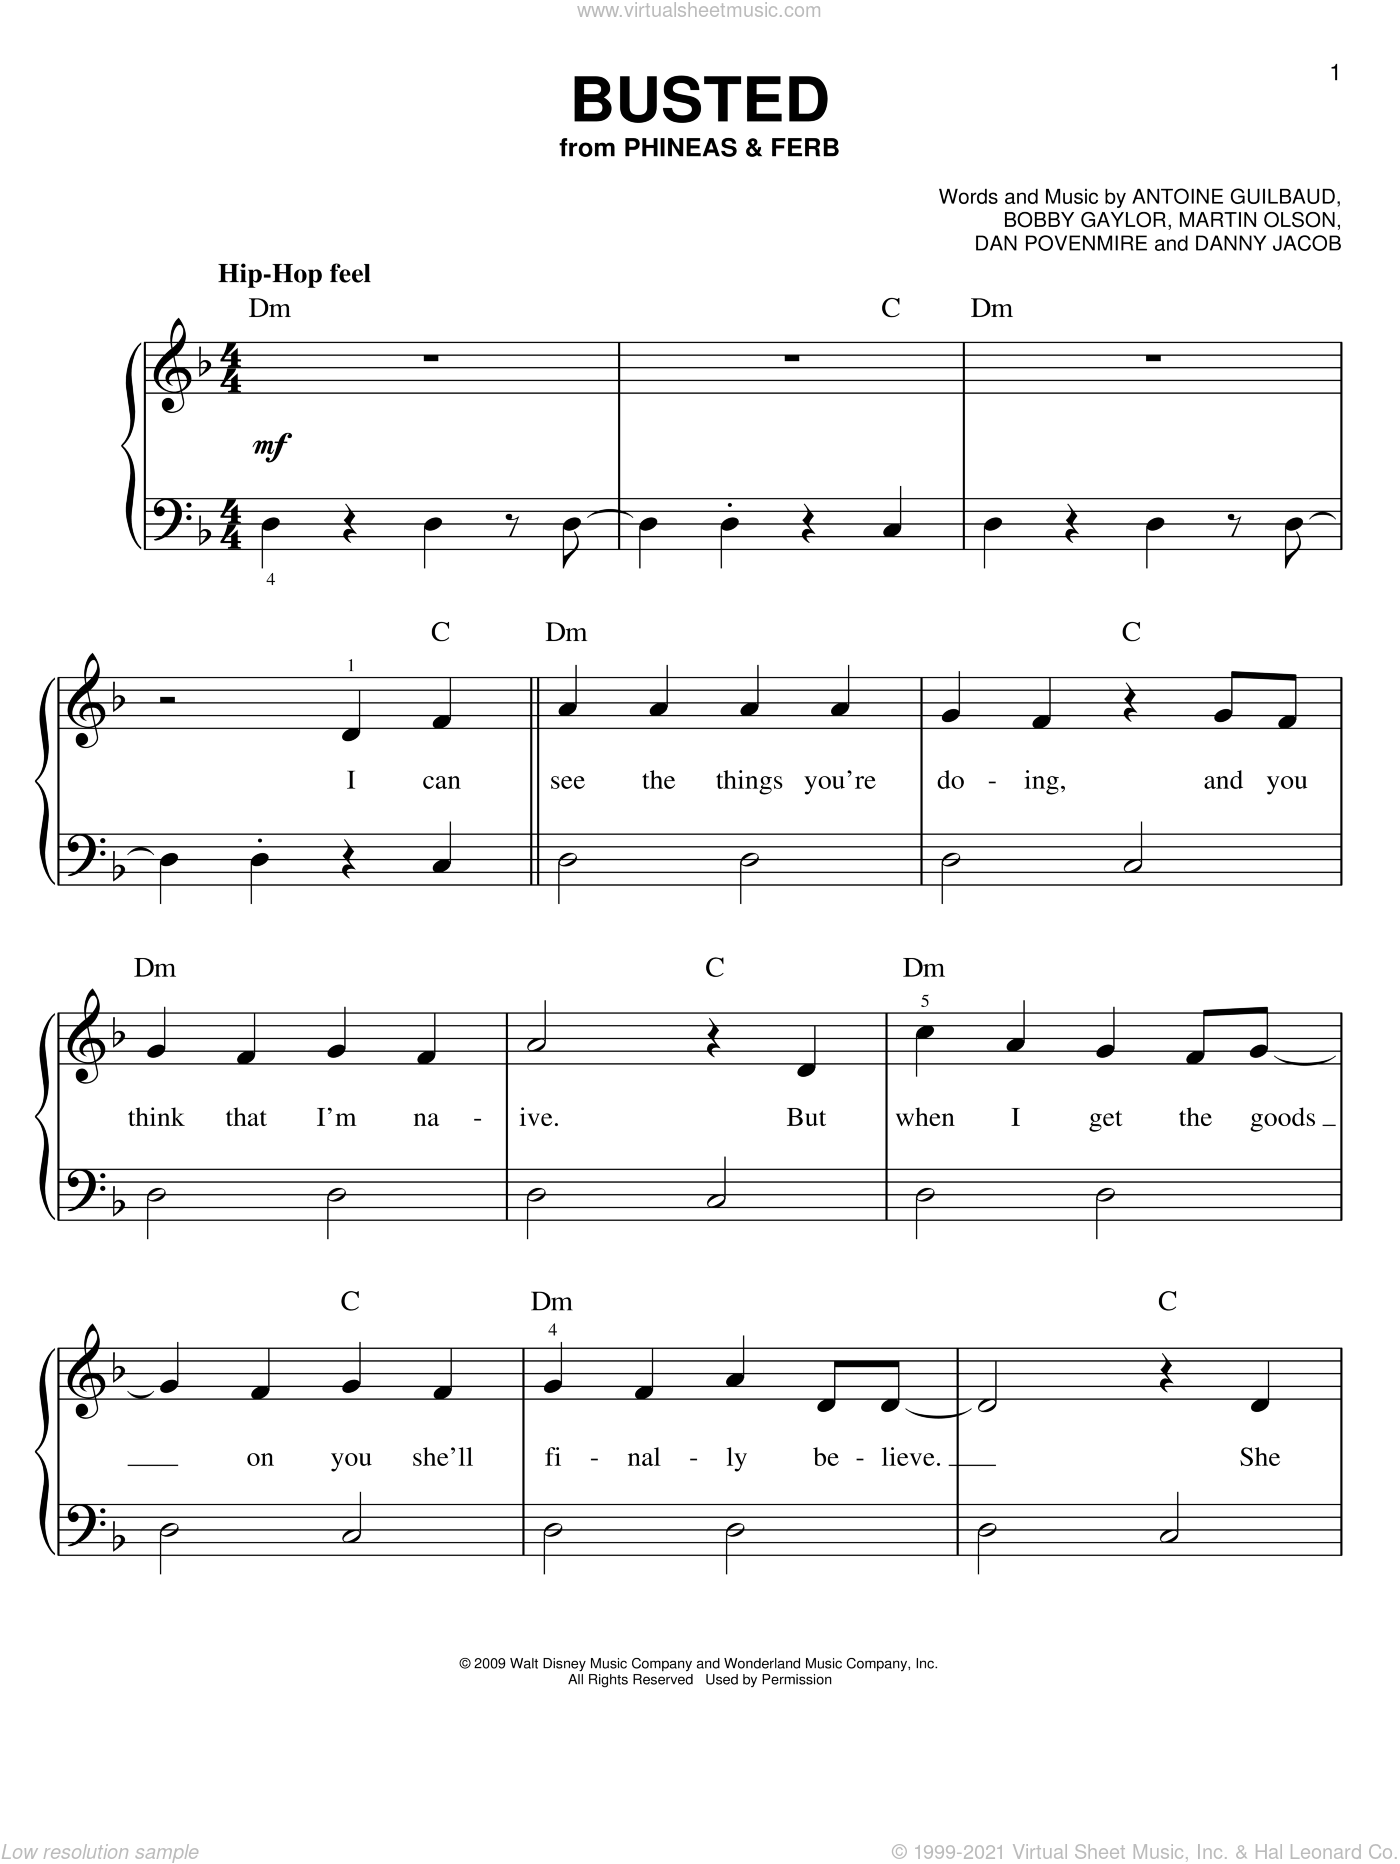 Busted sheet music for piano solo by Danny Jacob